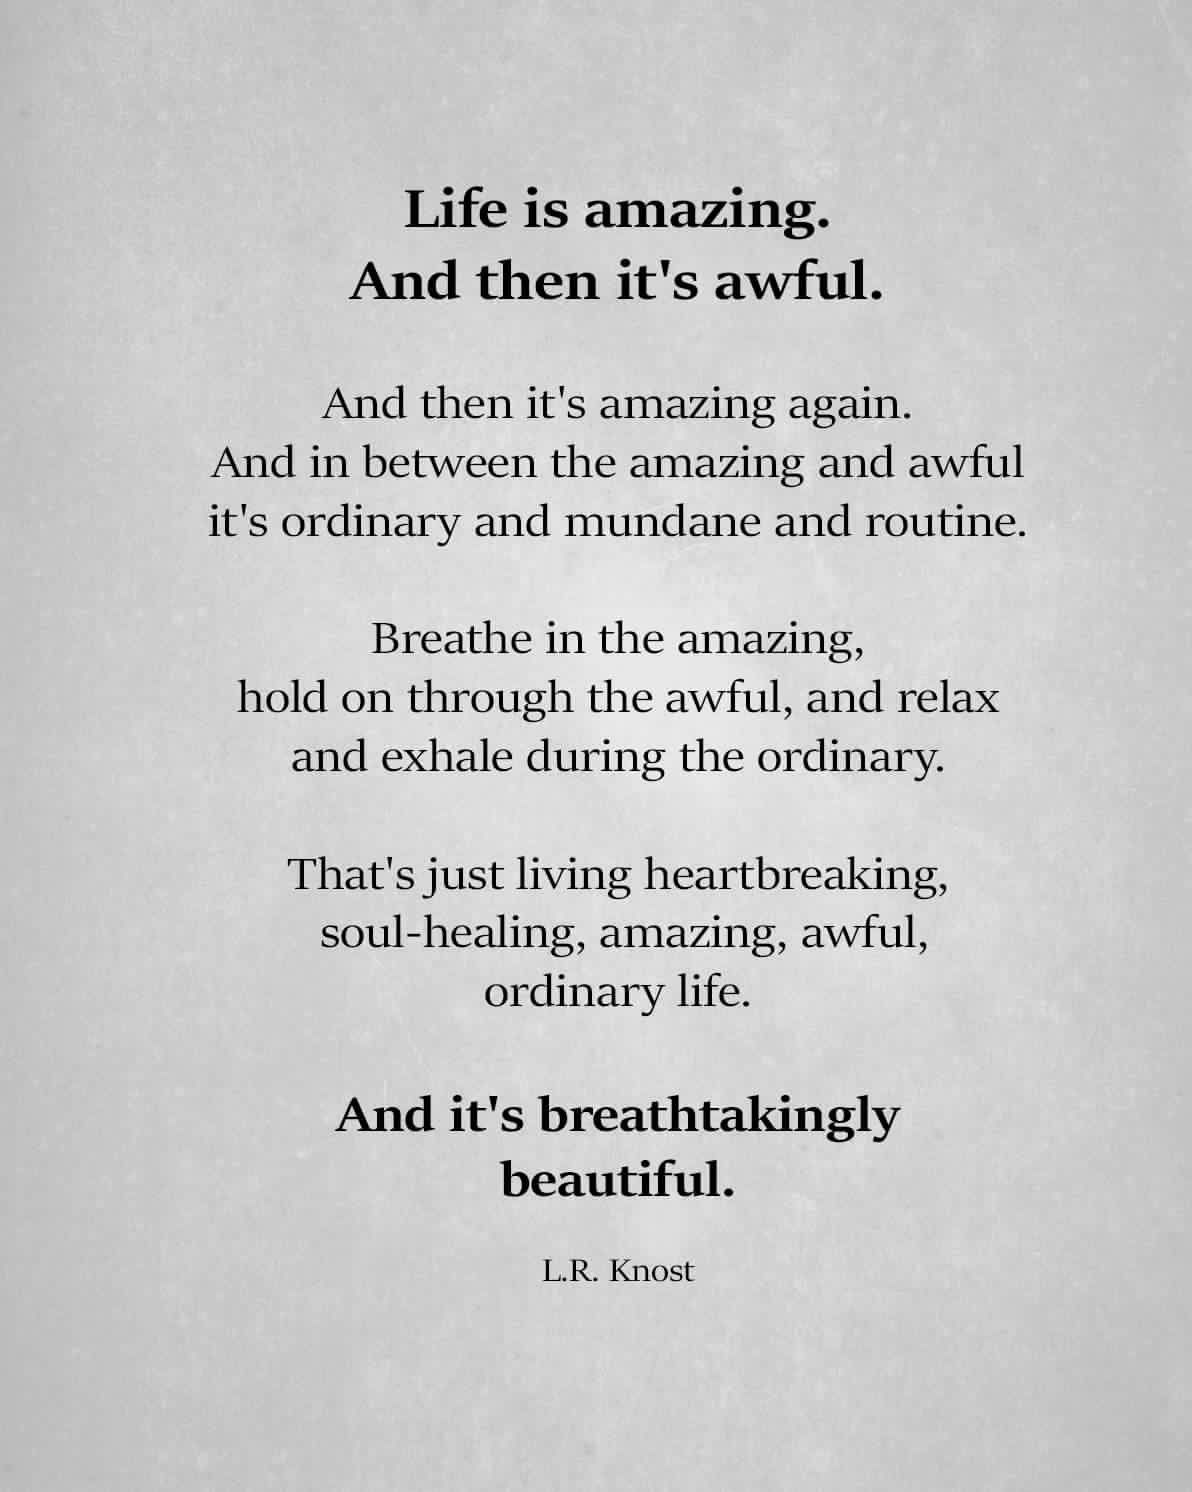 Pin by Julie on Quotes  Life experience quotes, Life is amazing